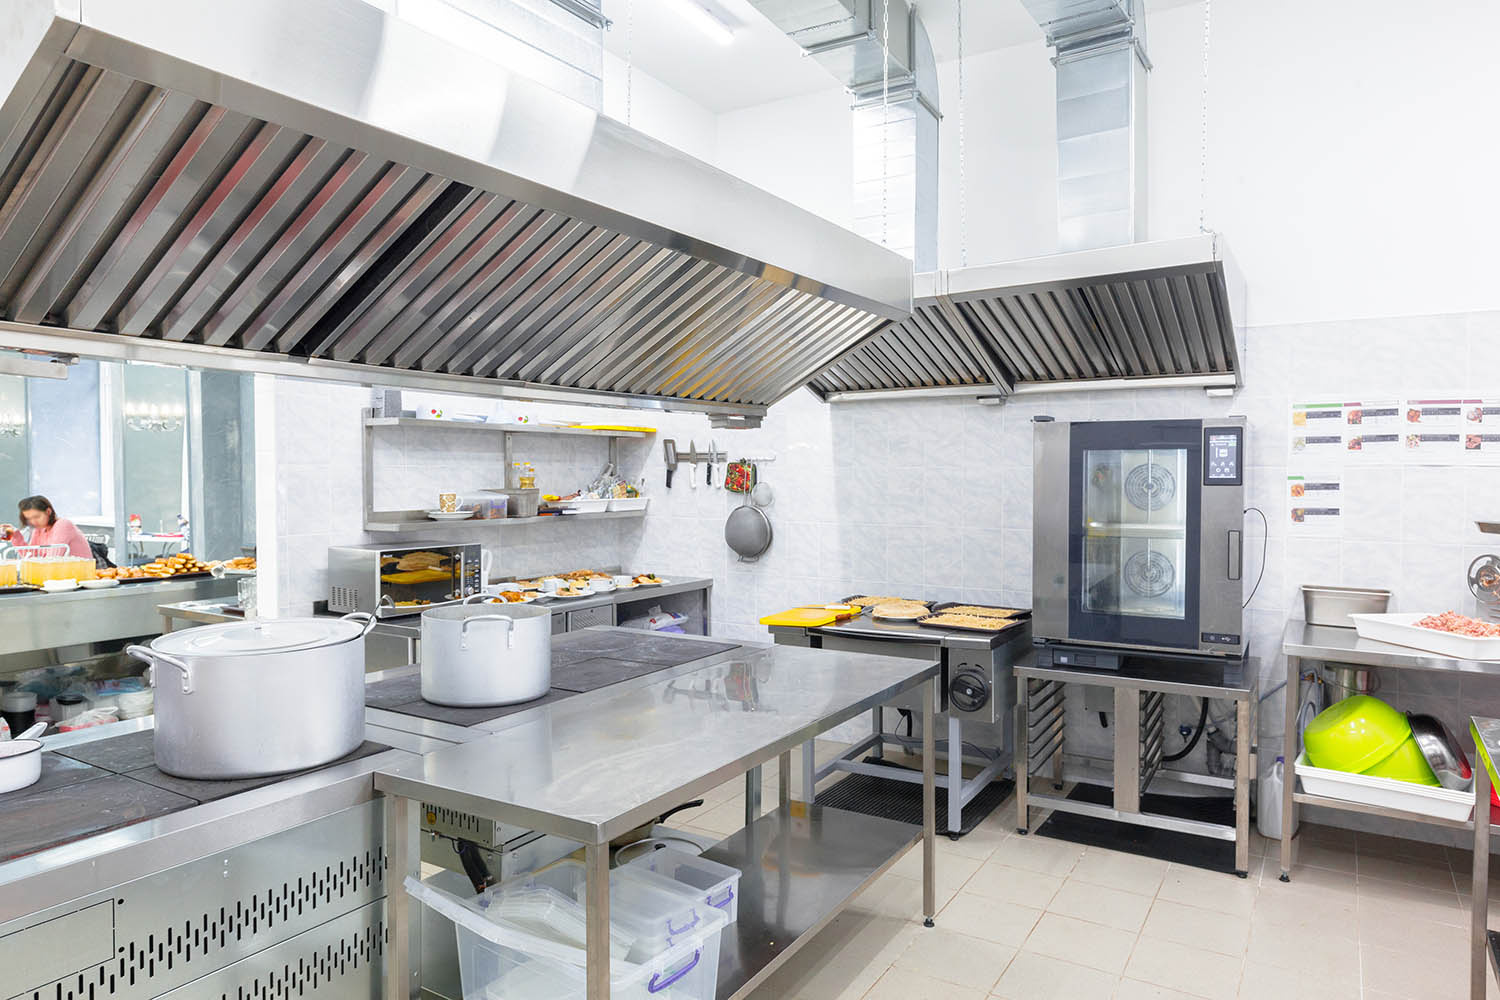 Commercial Kitchen Cleaning Services | County Cleaning — County Cleaning